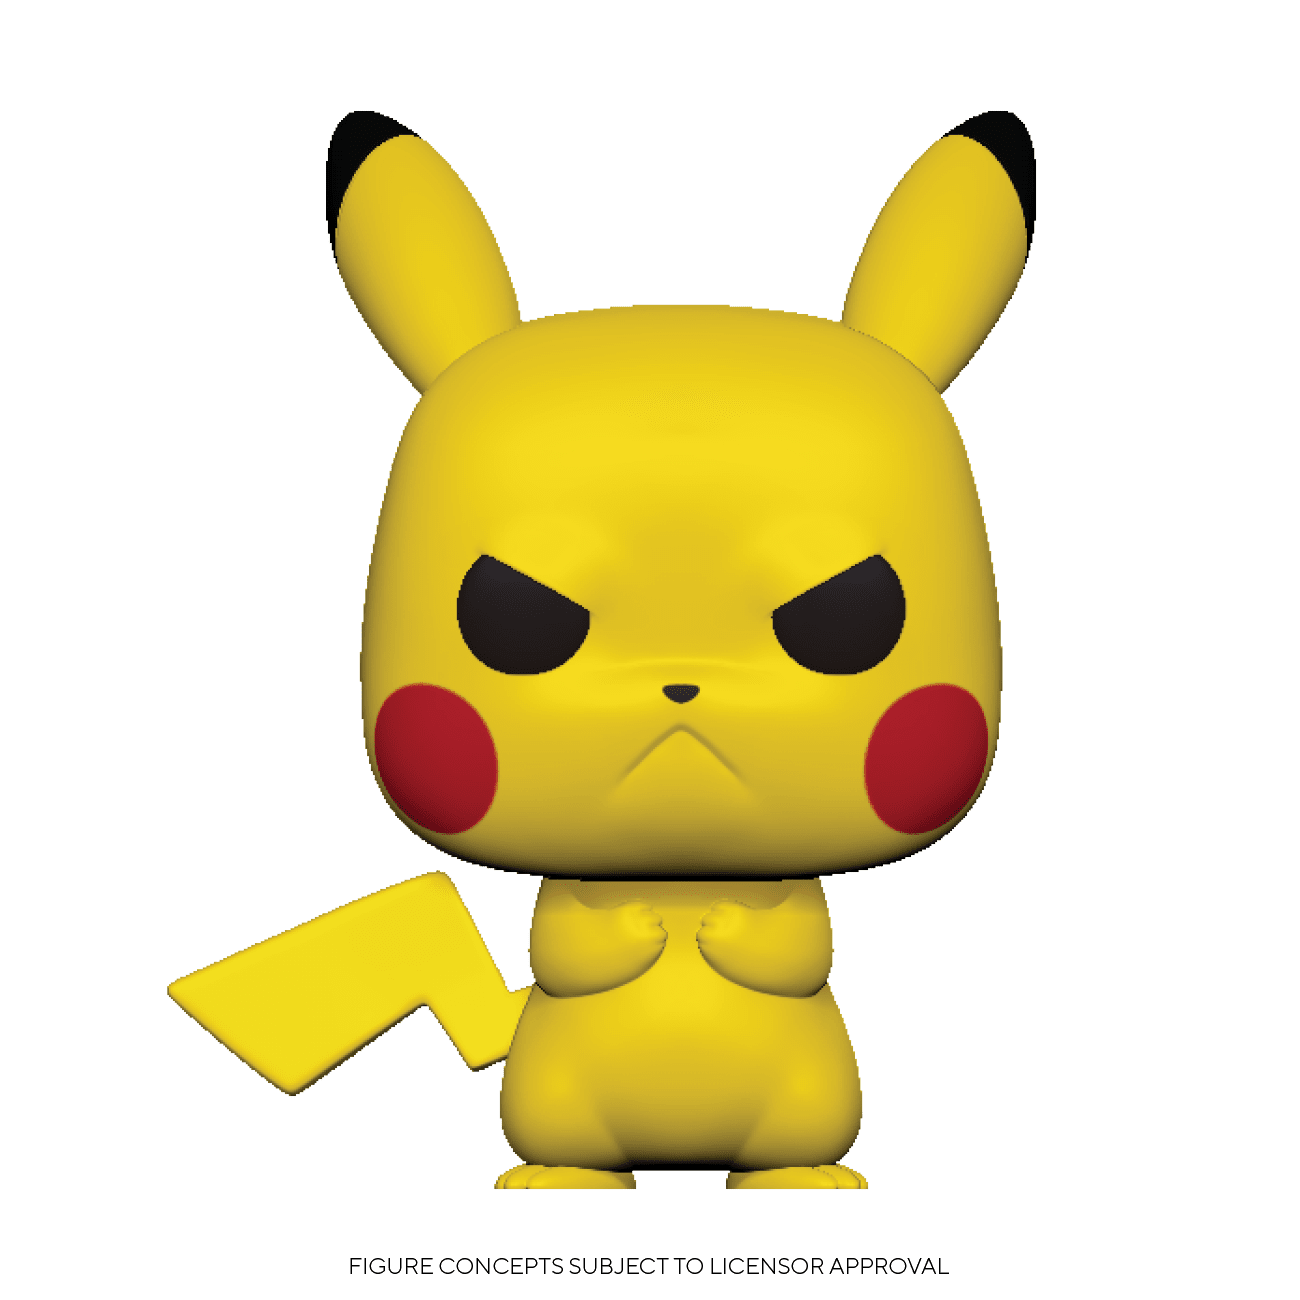 pikachu is grumpy pokemon